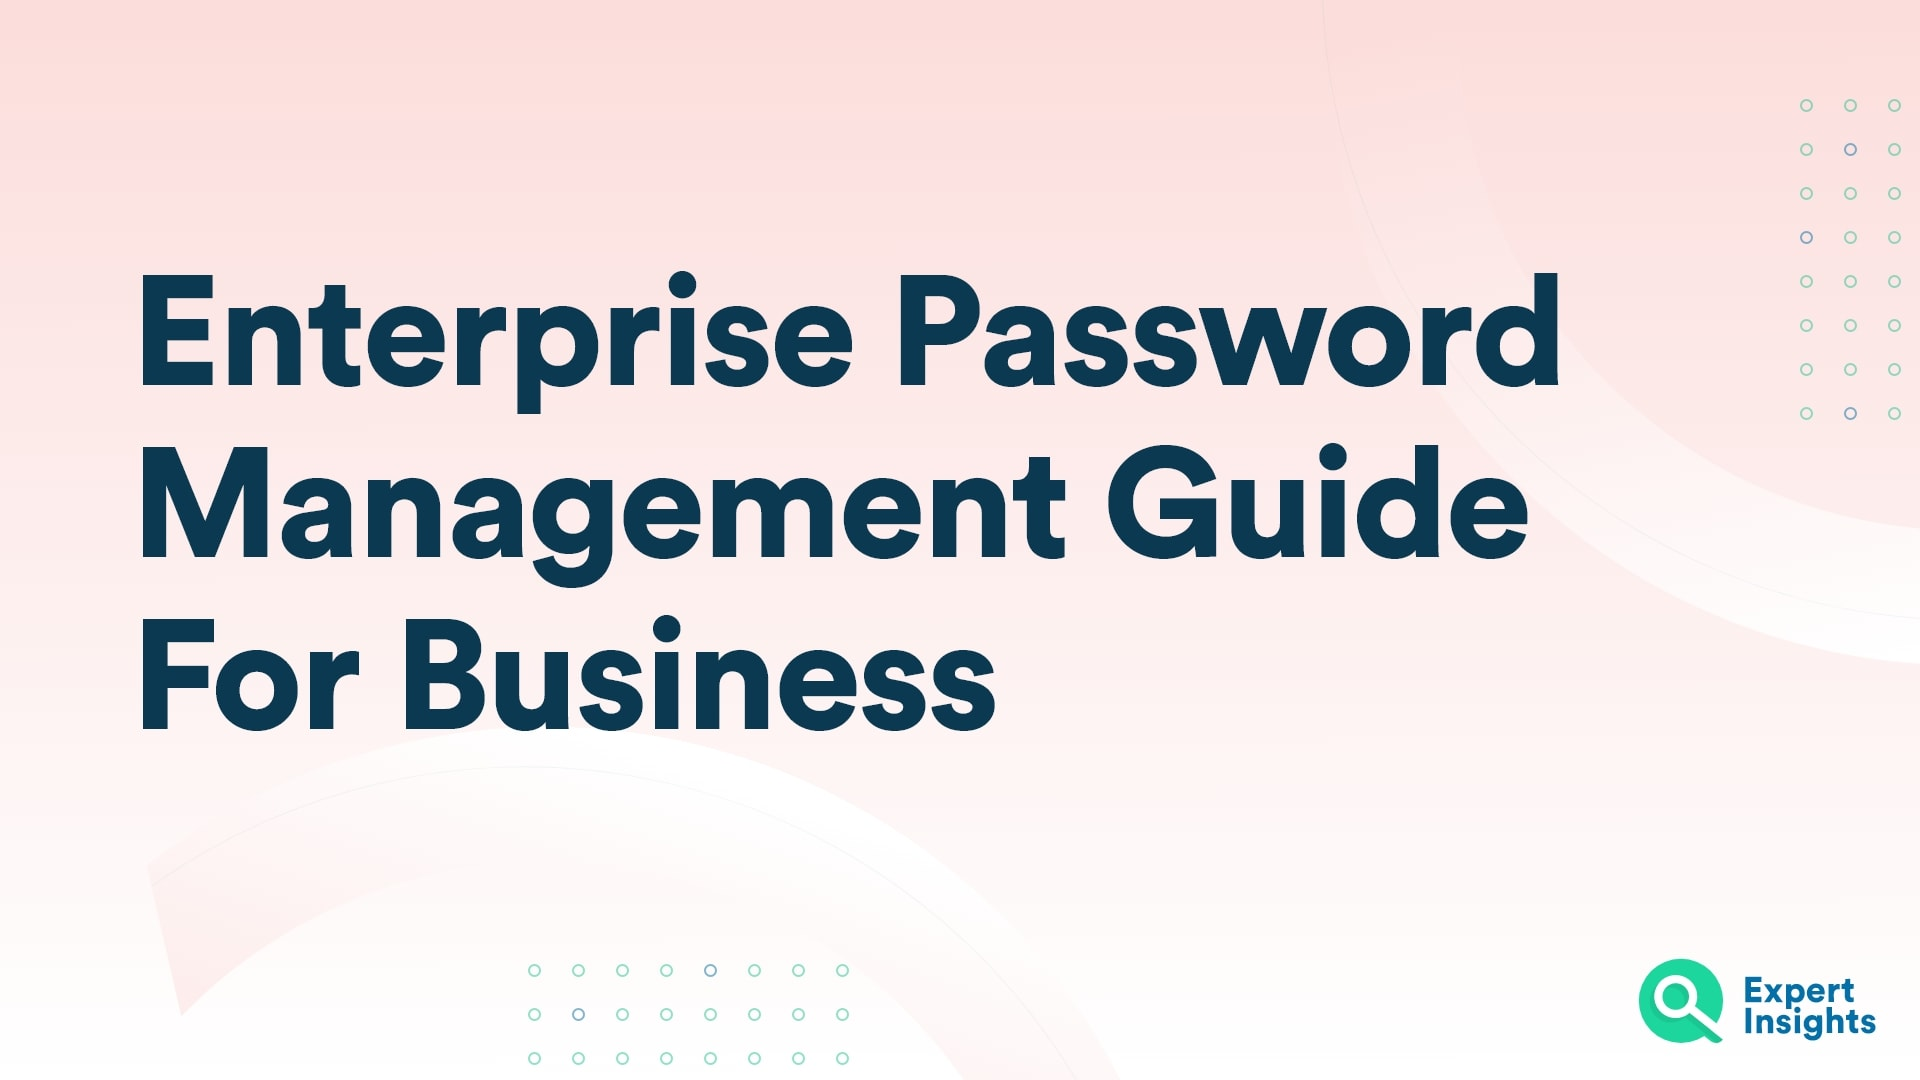 Enterprise Password Management Guide For Business - Expert Insights